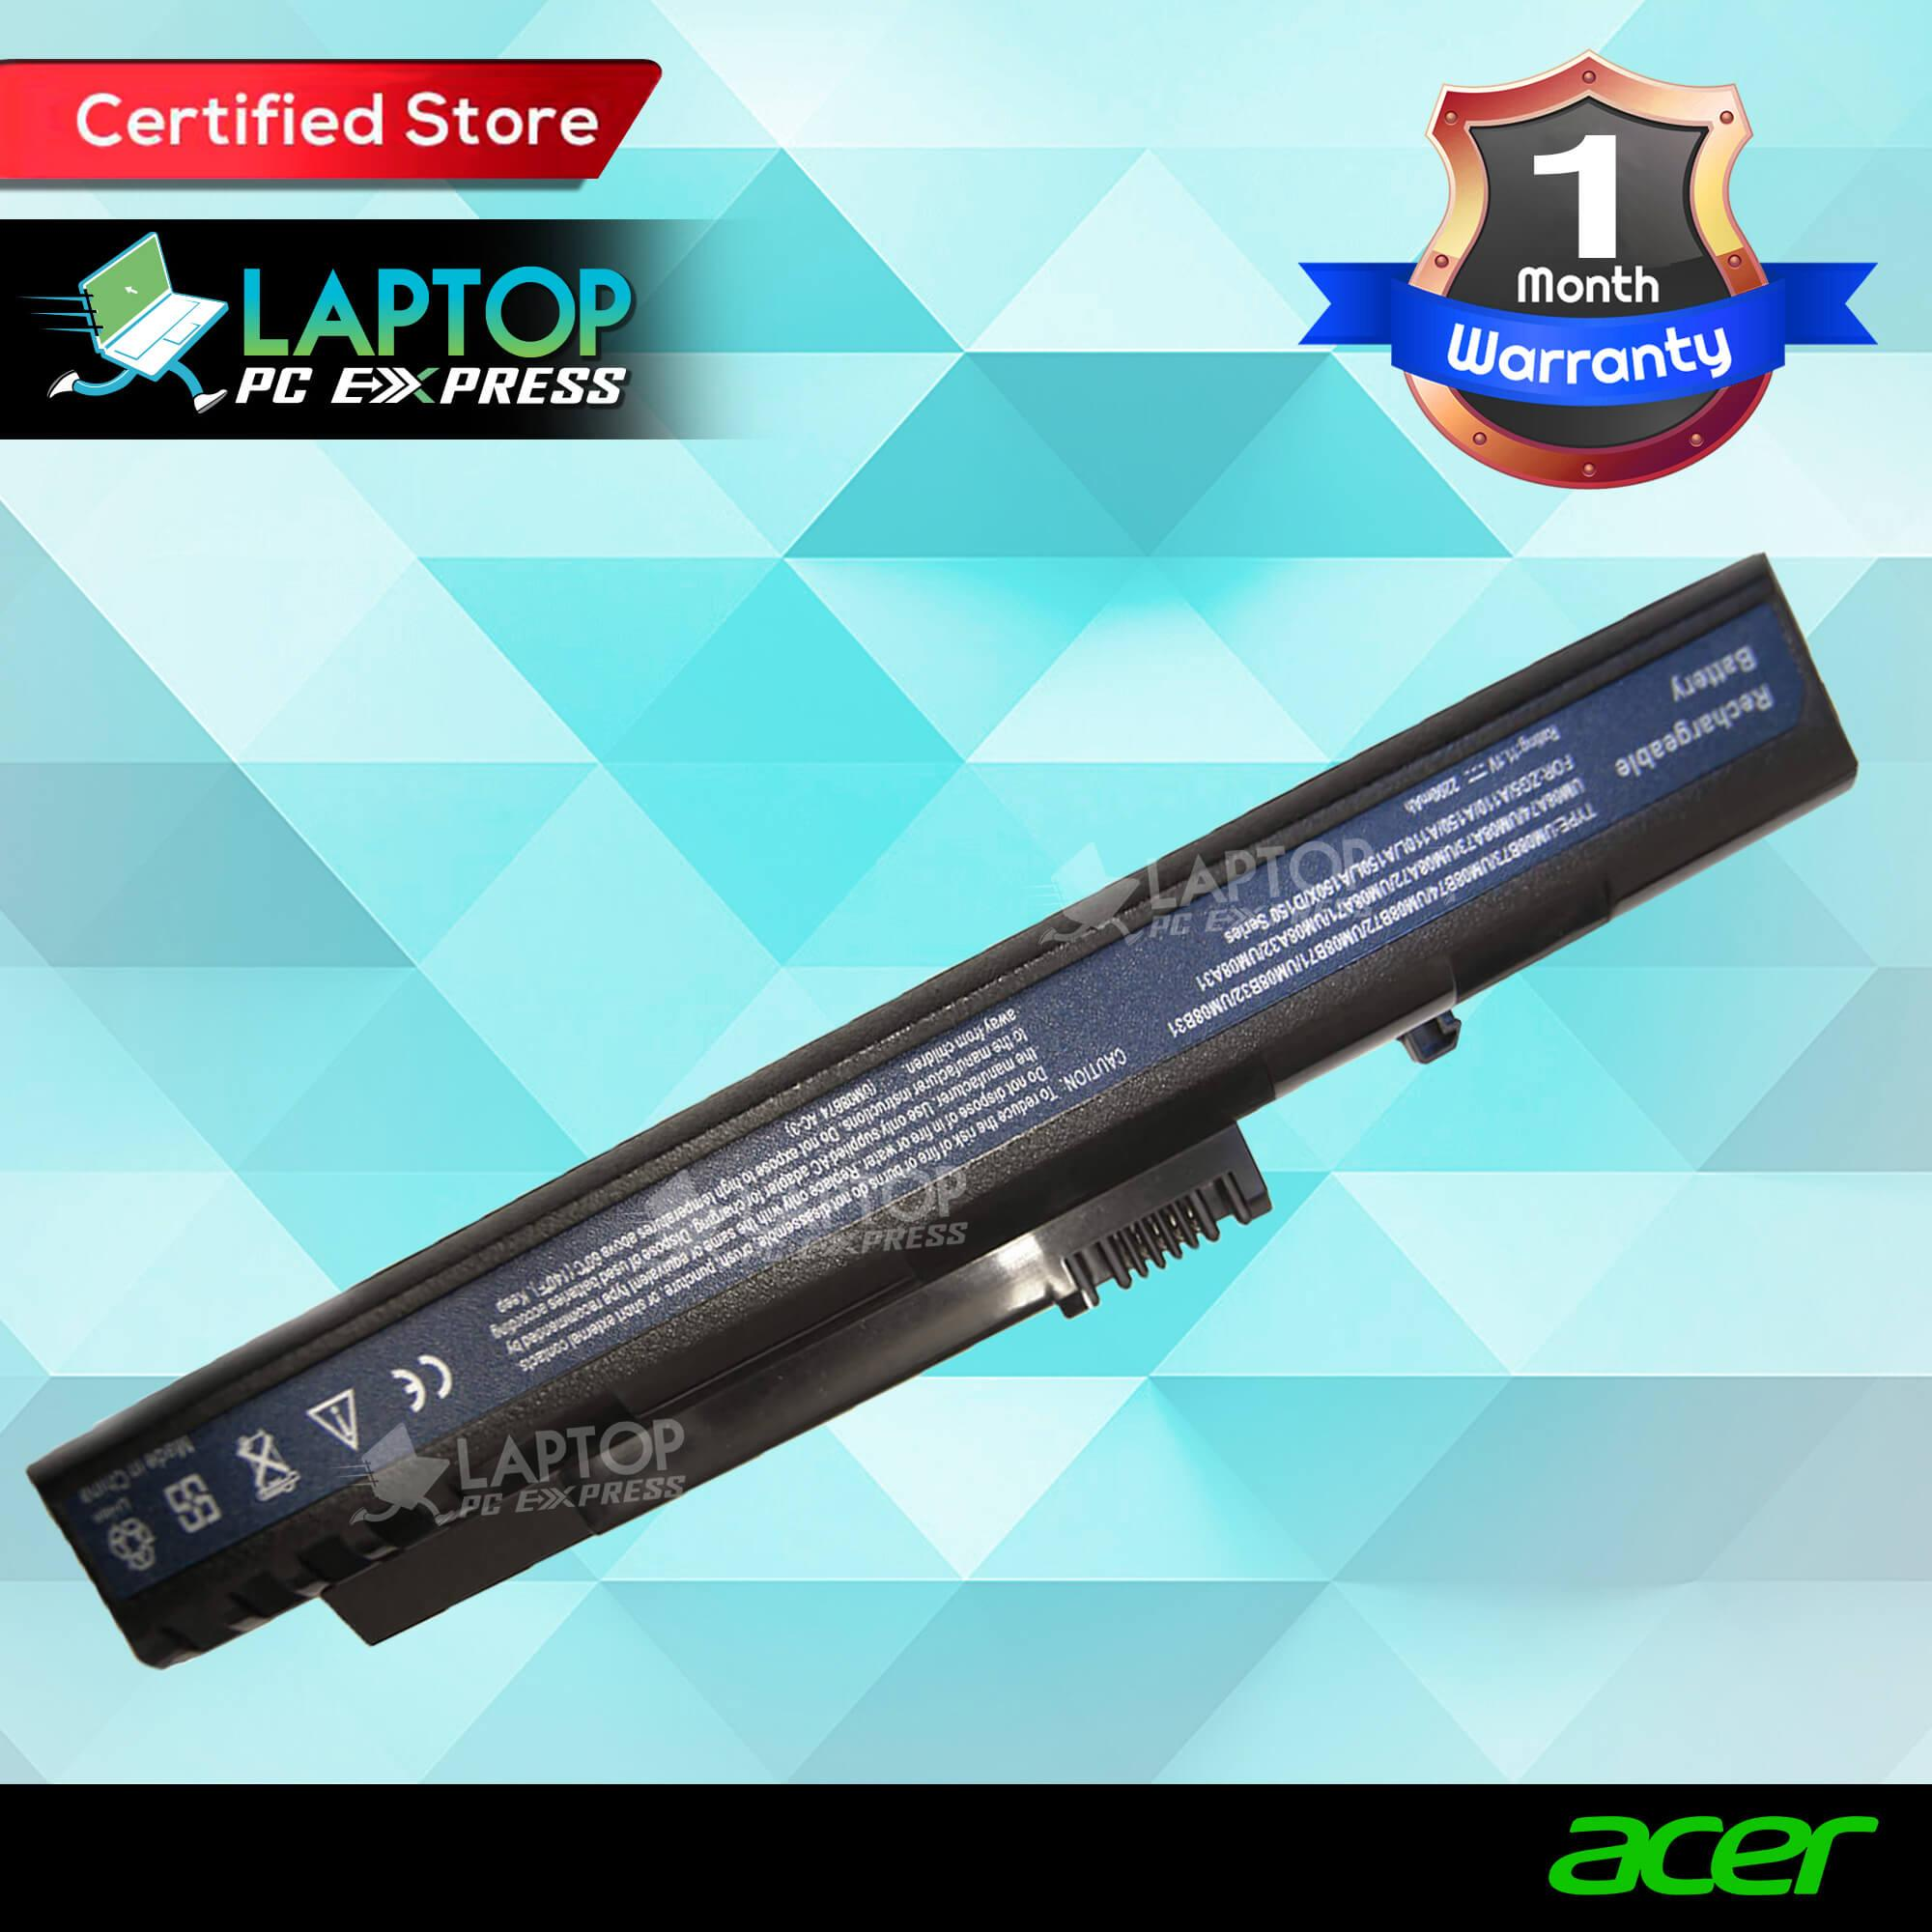 ad0098f4ae7a Computer Batteries for sale - PC Batteries prices, brands & specs in ...